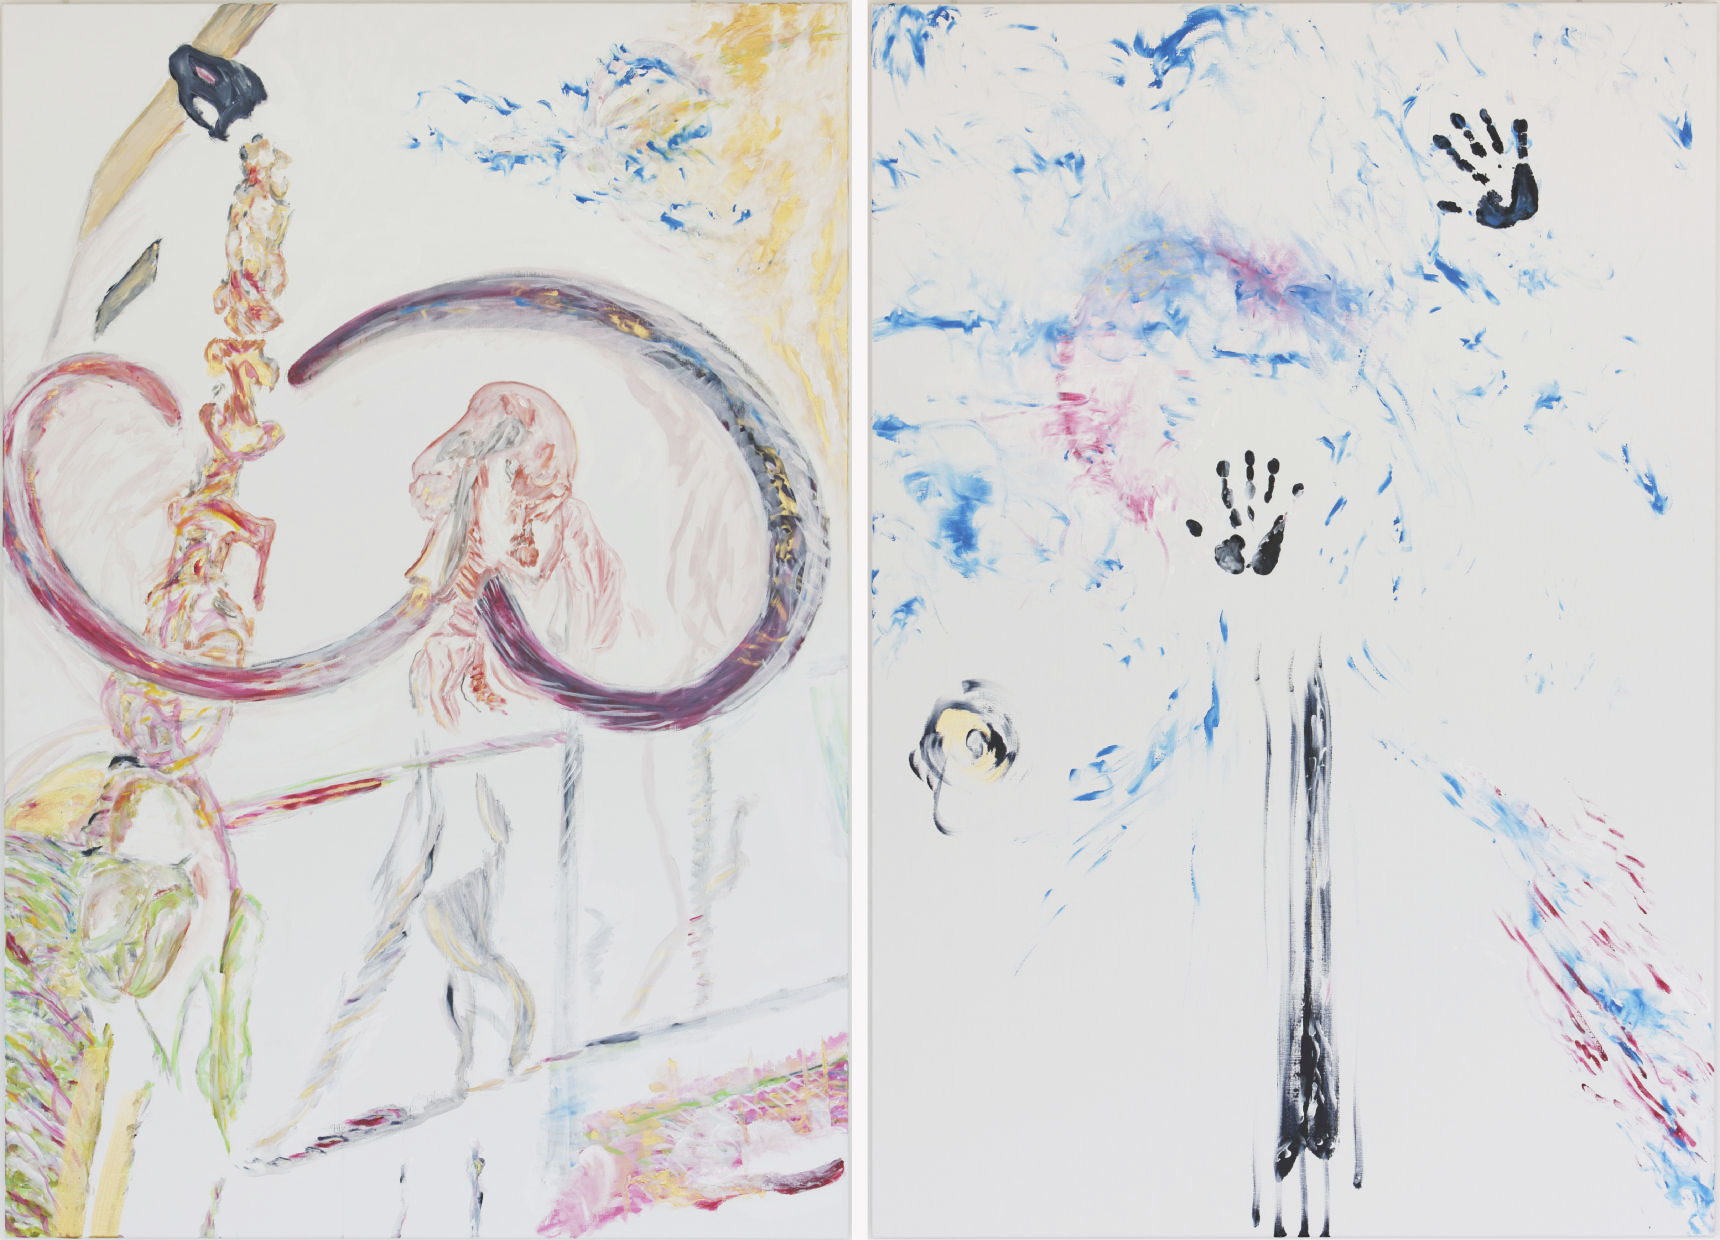 Natural spiritual (acrylic, pastel and pencil on canvas, 190 x 260 cm - diptych - 2014)